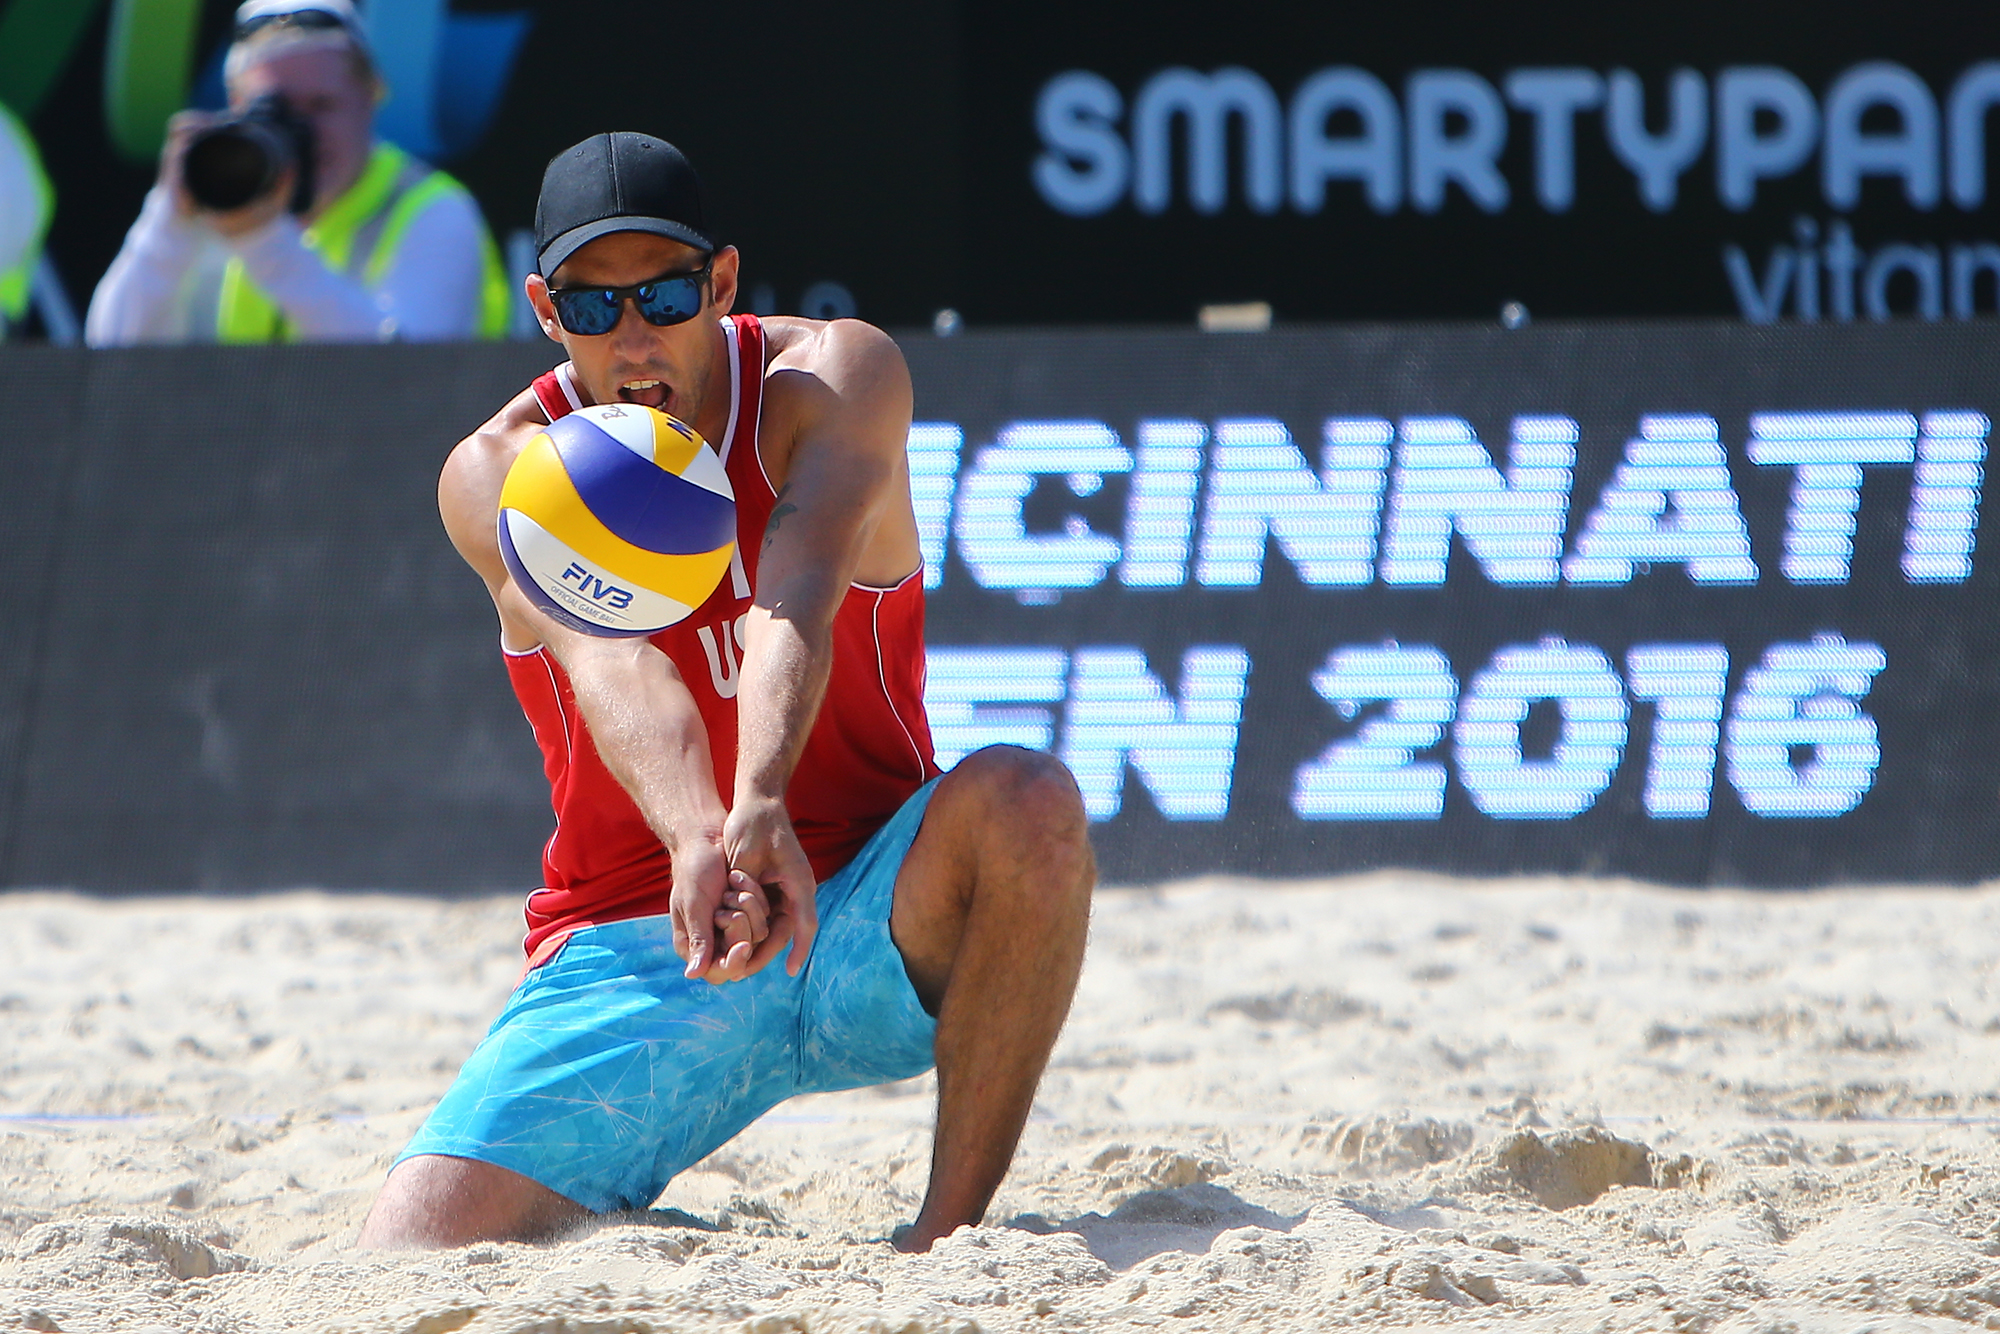 Nick Lucena | Fort Lauderdale, Florida | Beach Volleyball